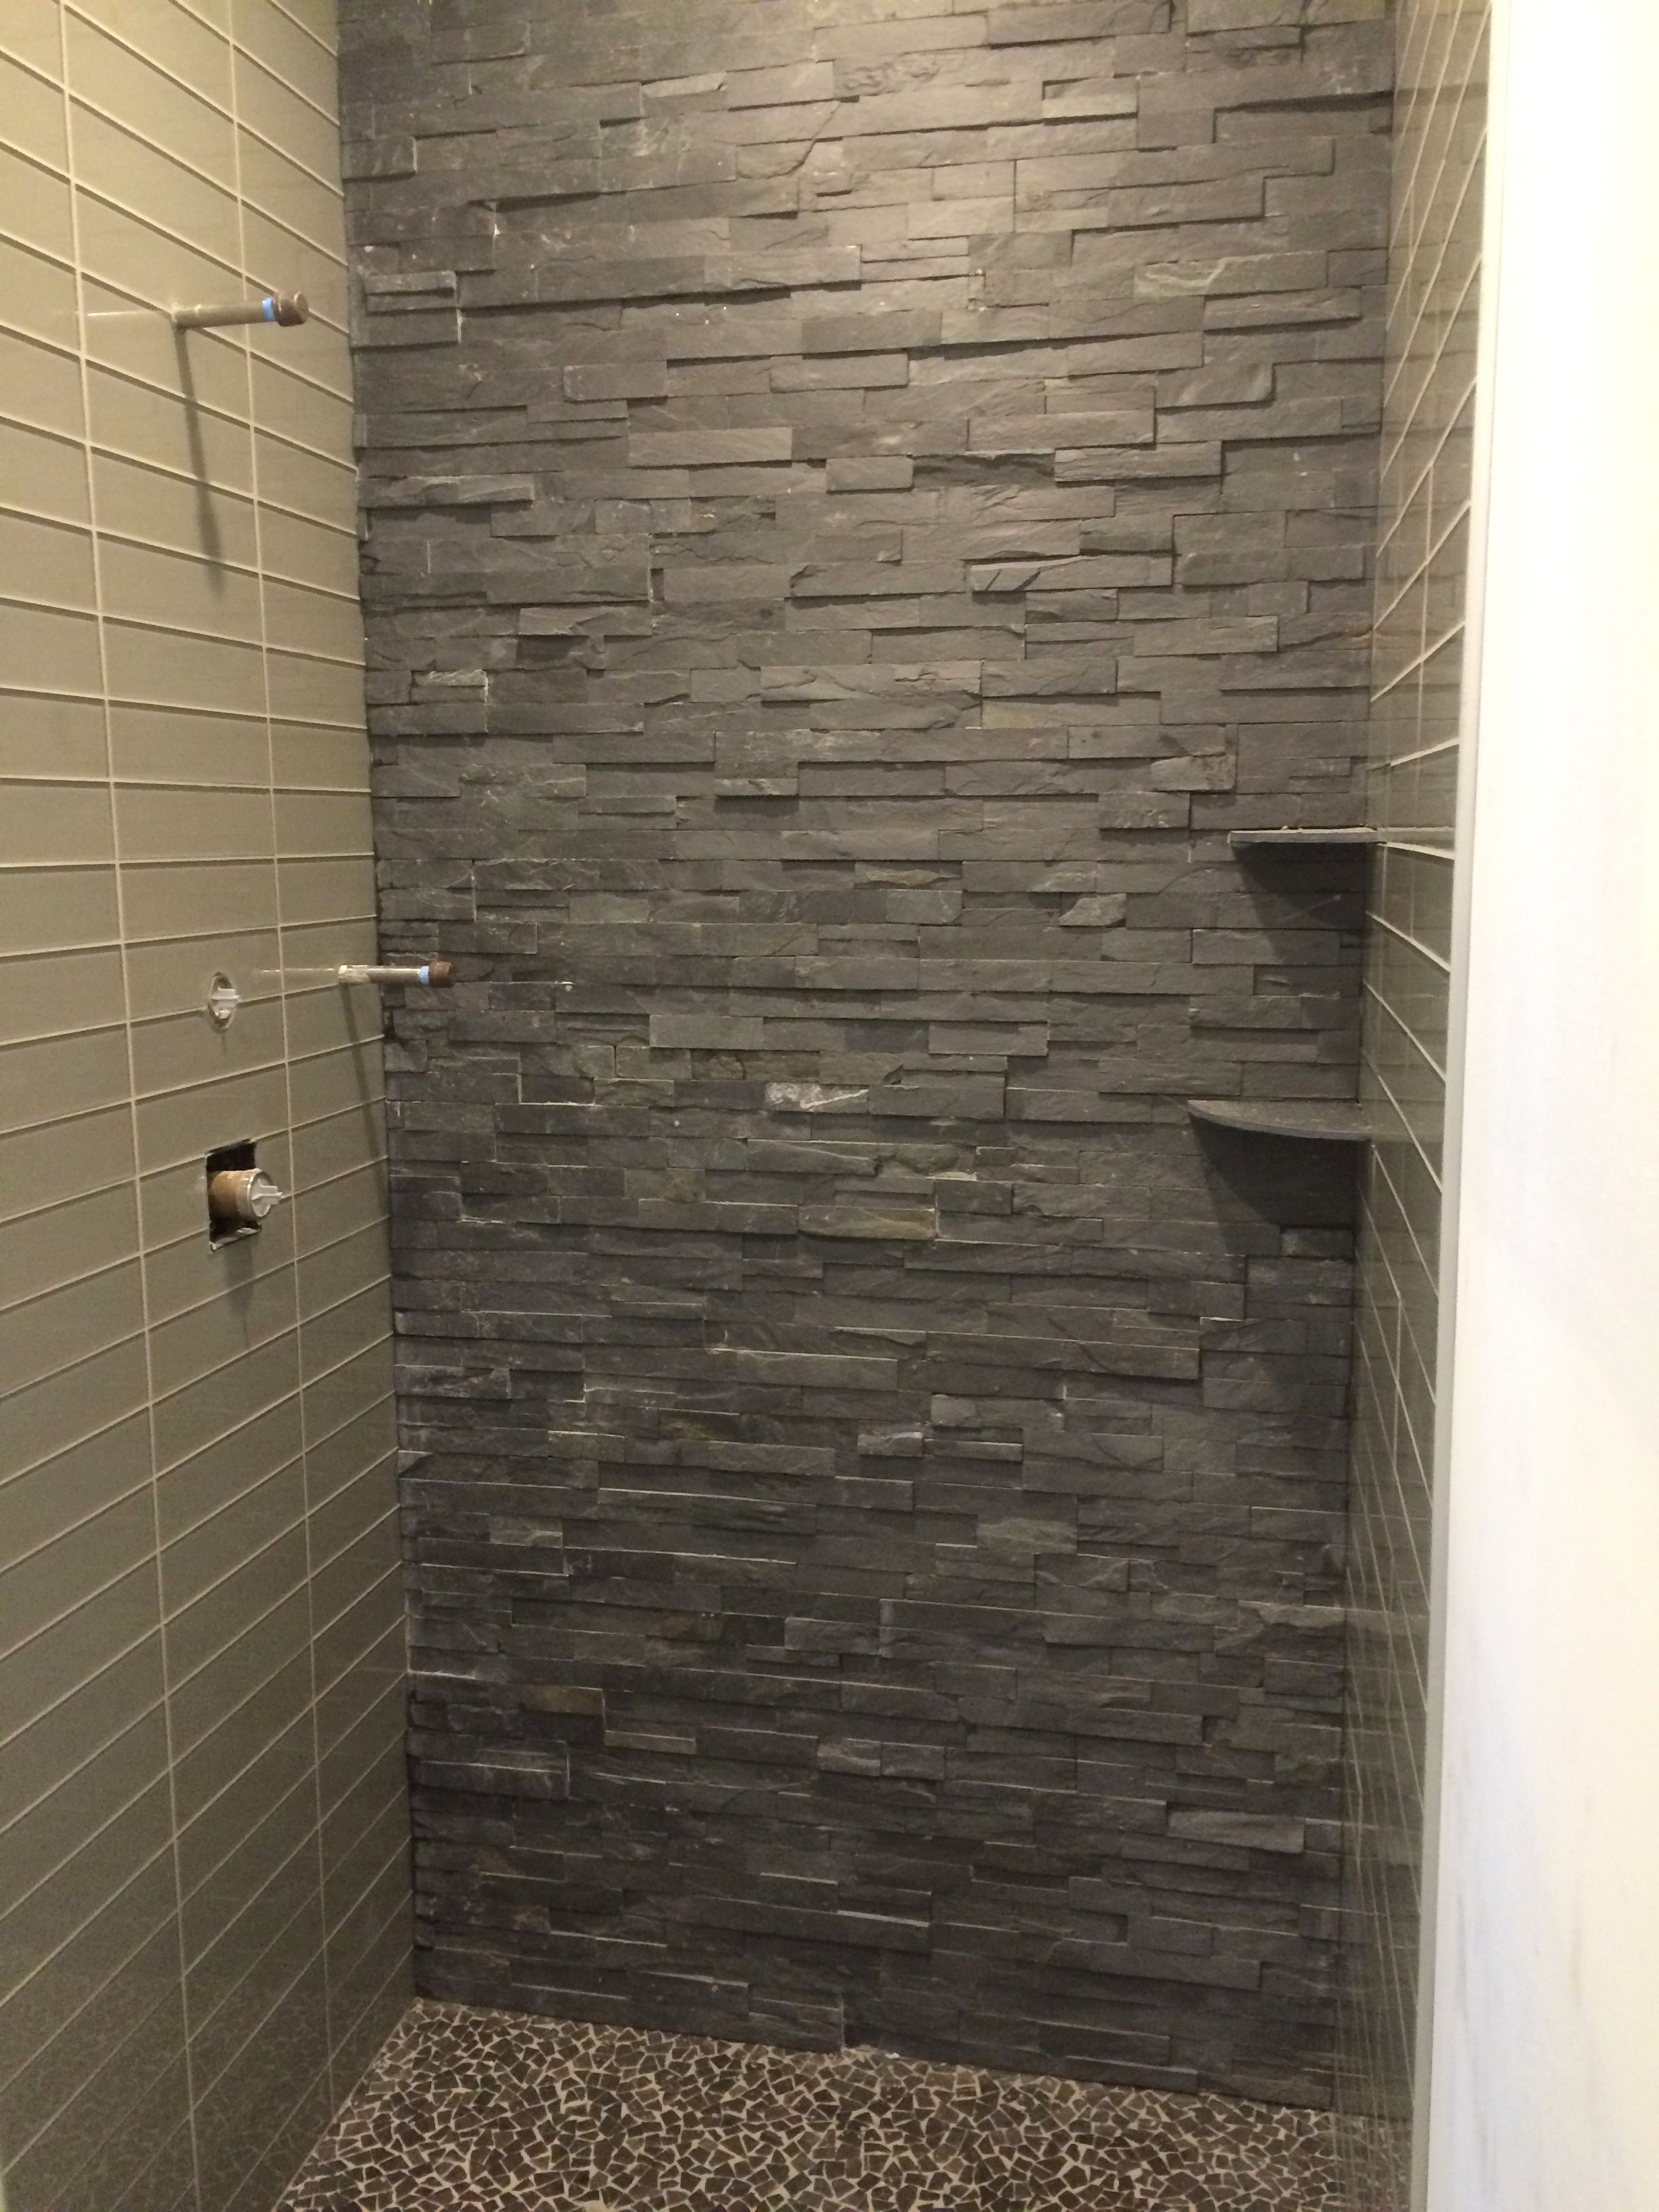 Ledgerstone and subway tile walk in shower with pebble floor and     Ledgerstone and subway tile walk in shower with pebble floor and corner  shelves  Tile  Arley Wholesale Installation  Old World Tile by John Damiano